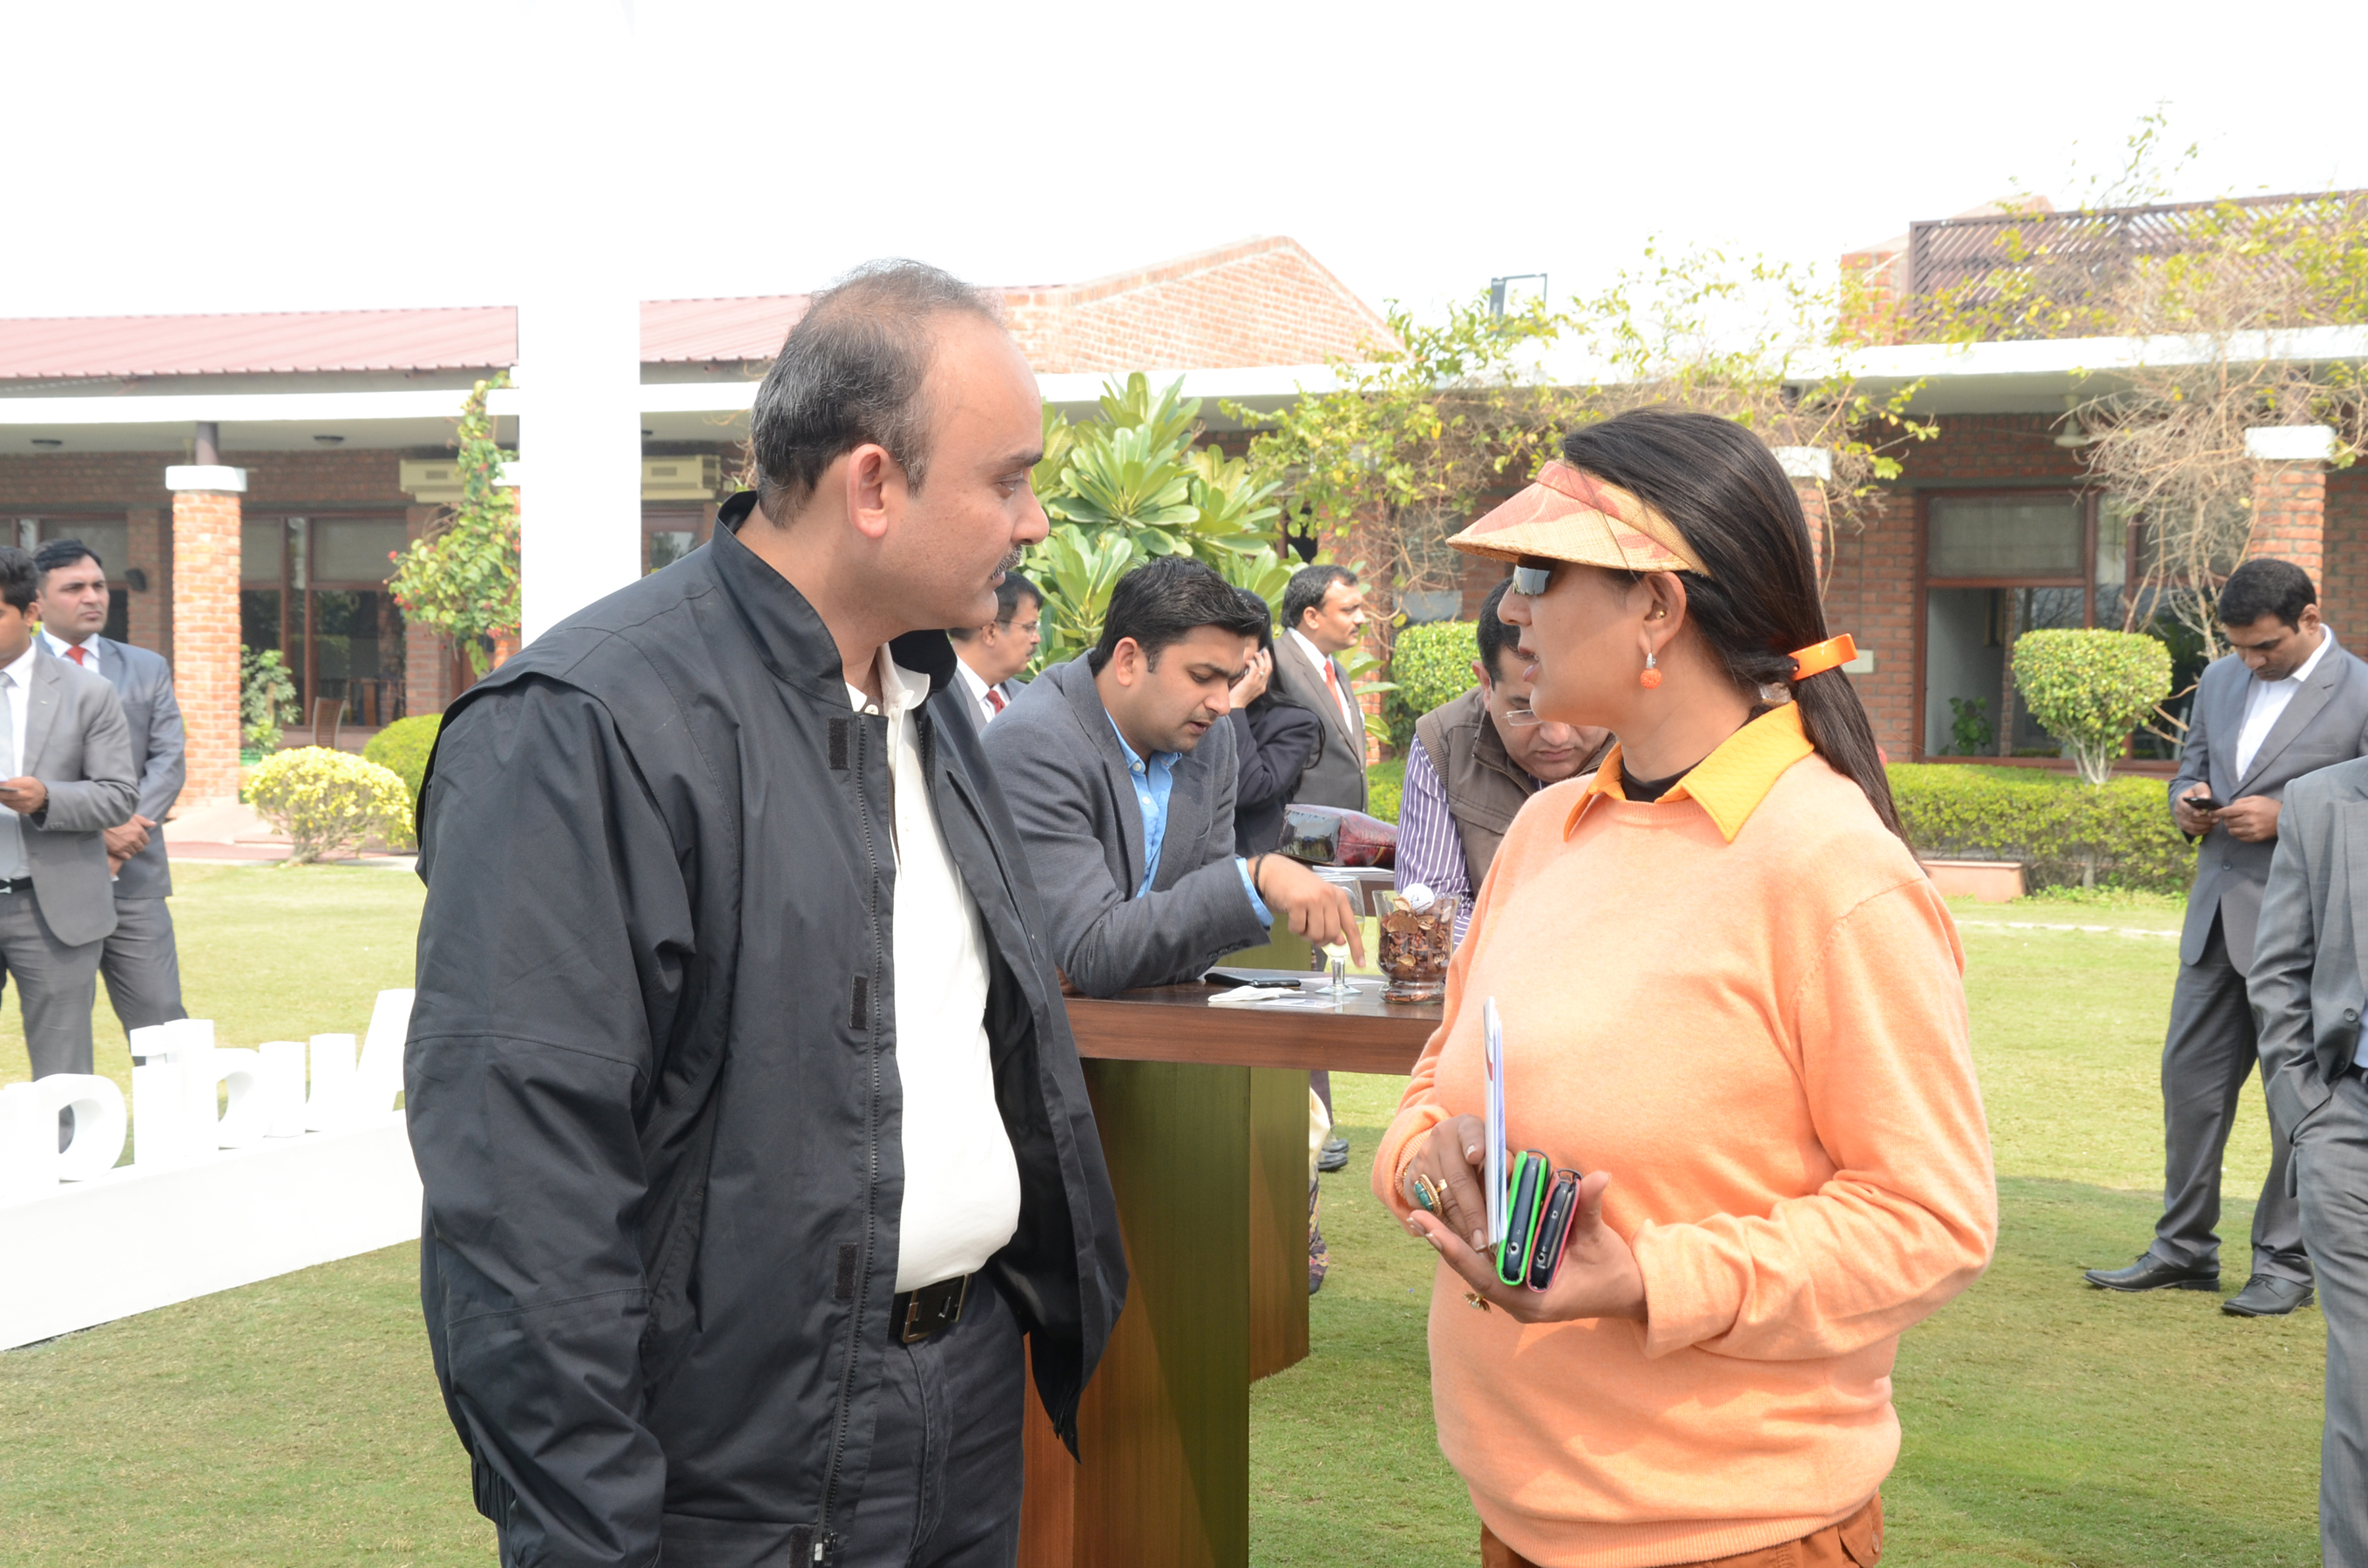 Mr. Sarvajit Verma  Senior Vice President  Audi Delhi West with Ms. Neelam Pratap Rudy